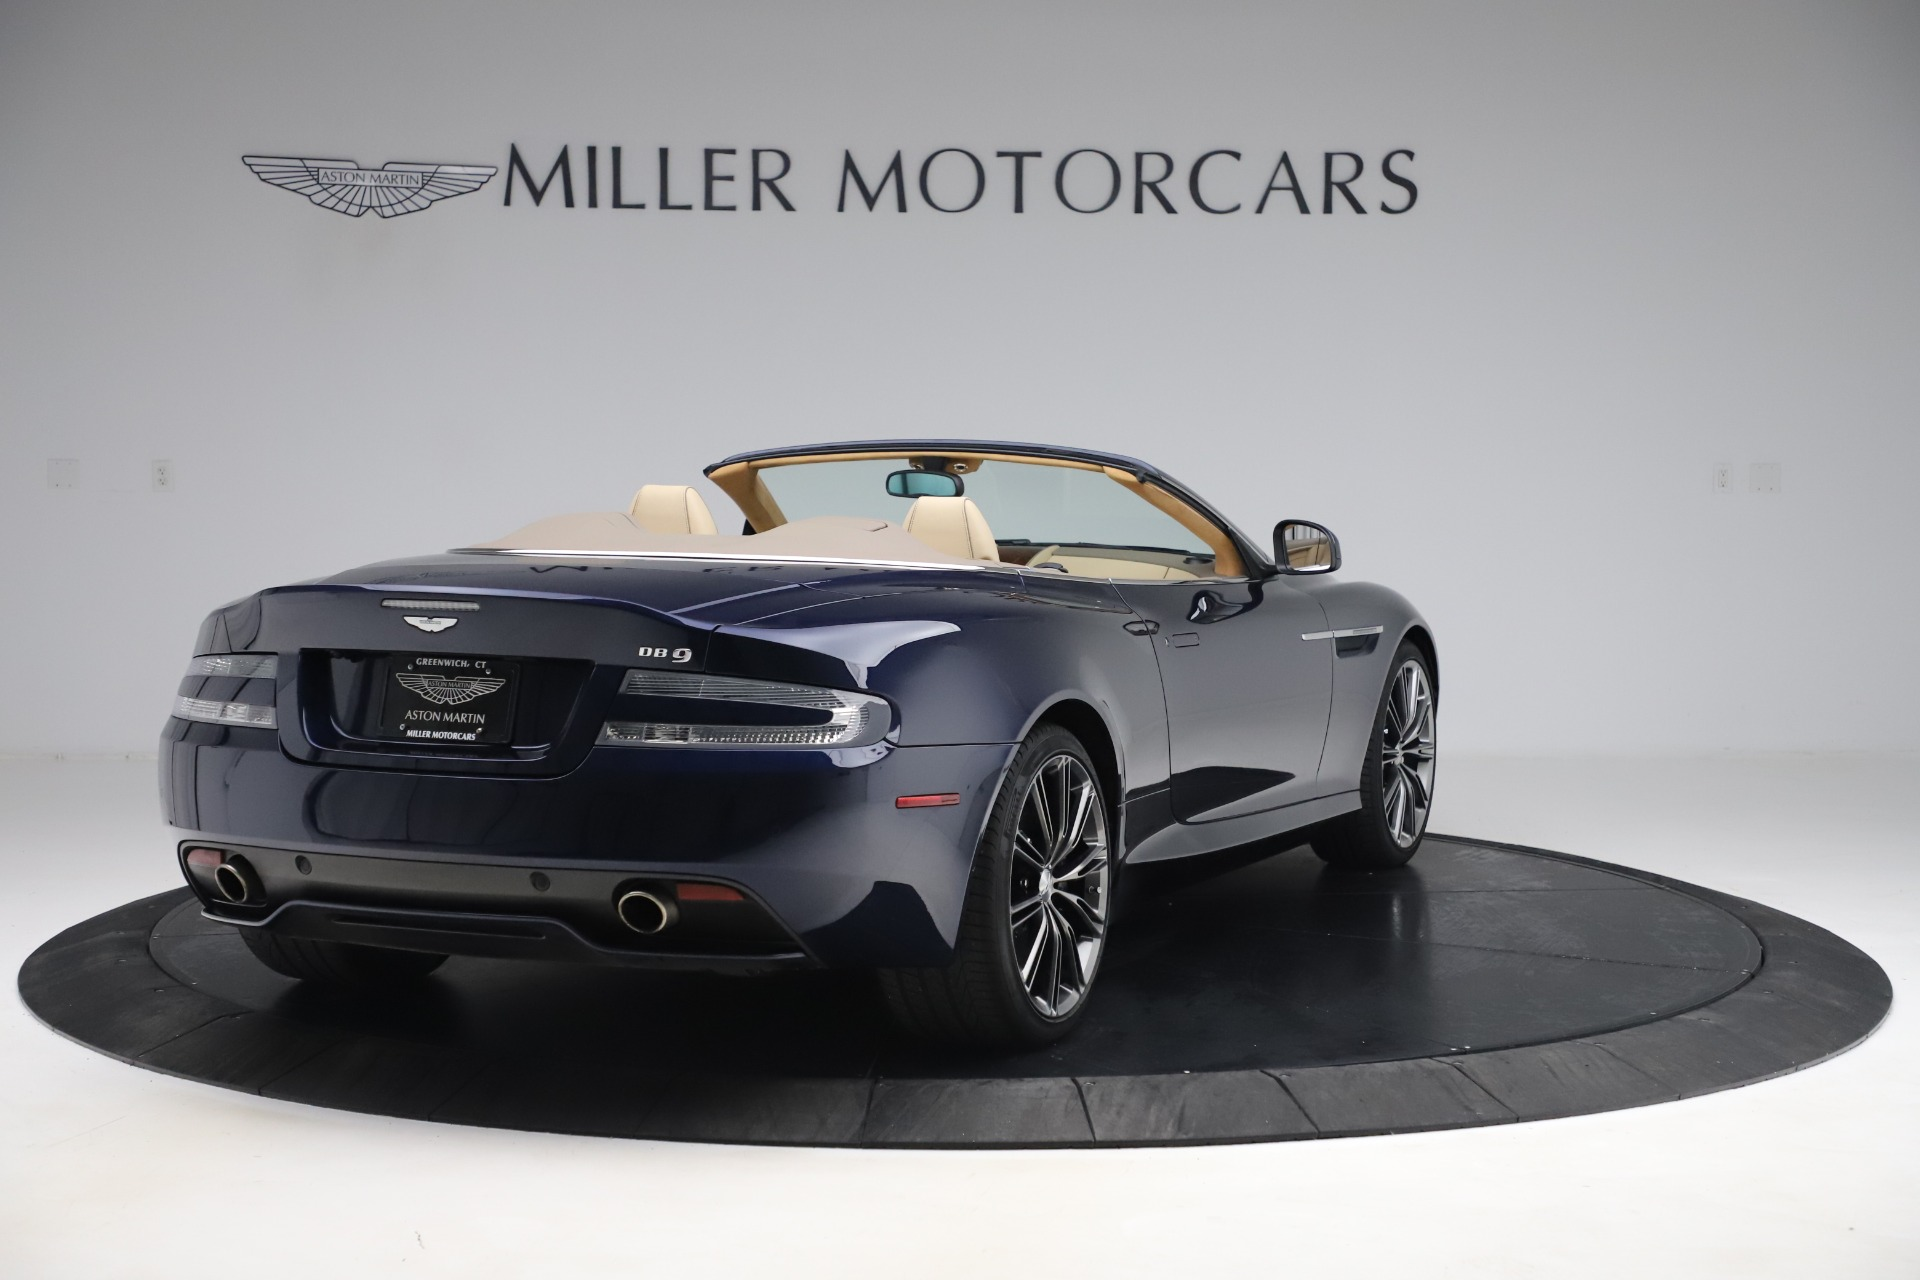 Used 2014 Aston Martin DB9 Volante For Sale In Westport, CT 3591_p7